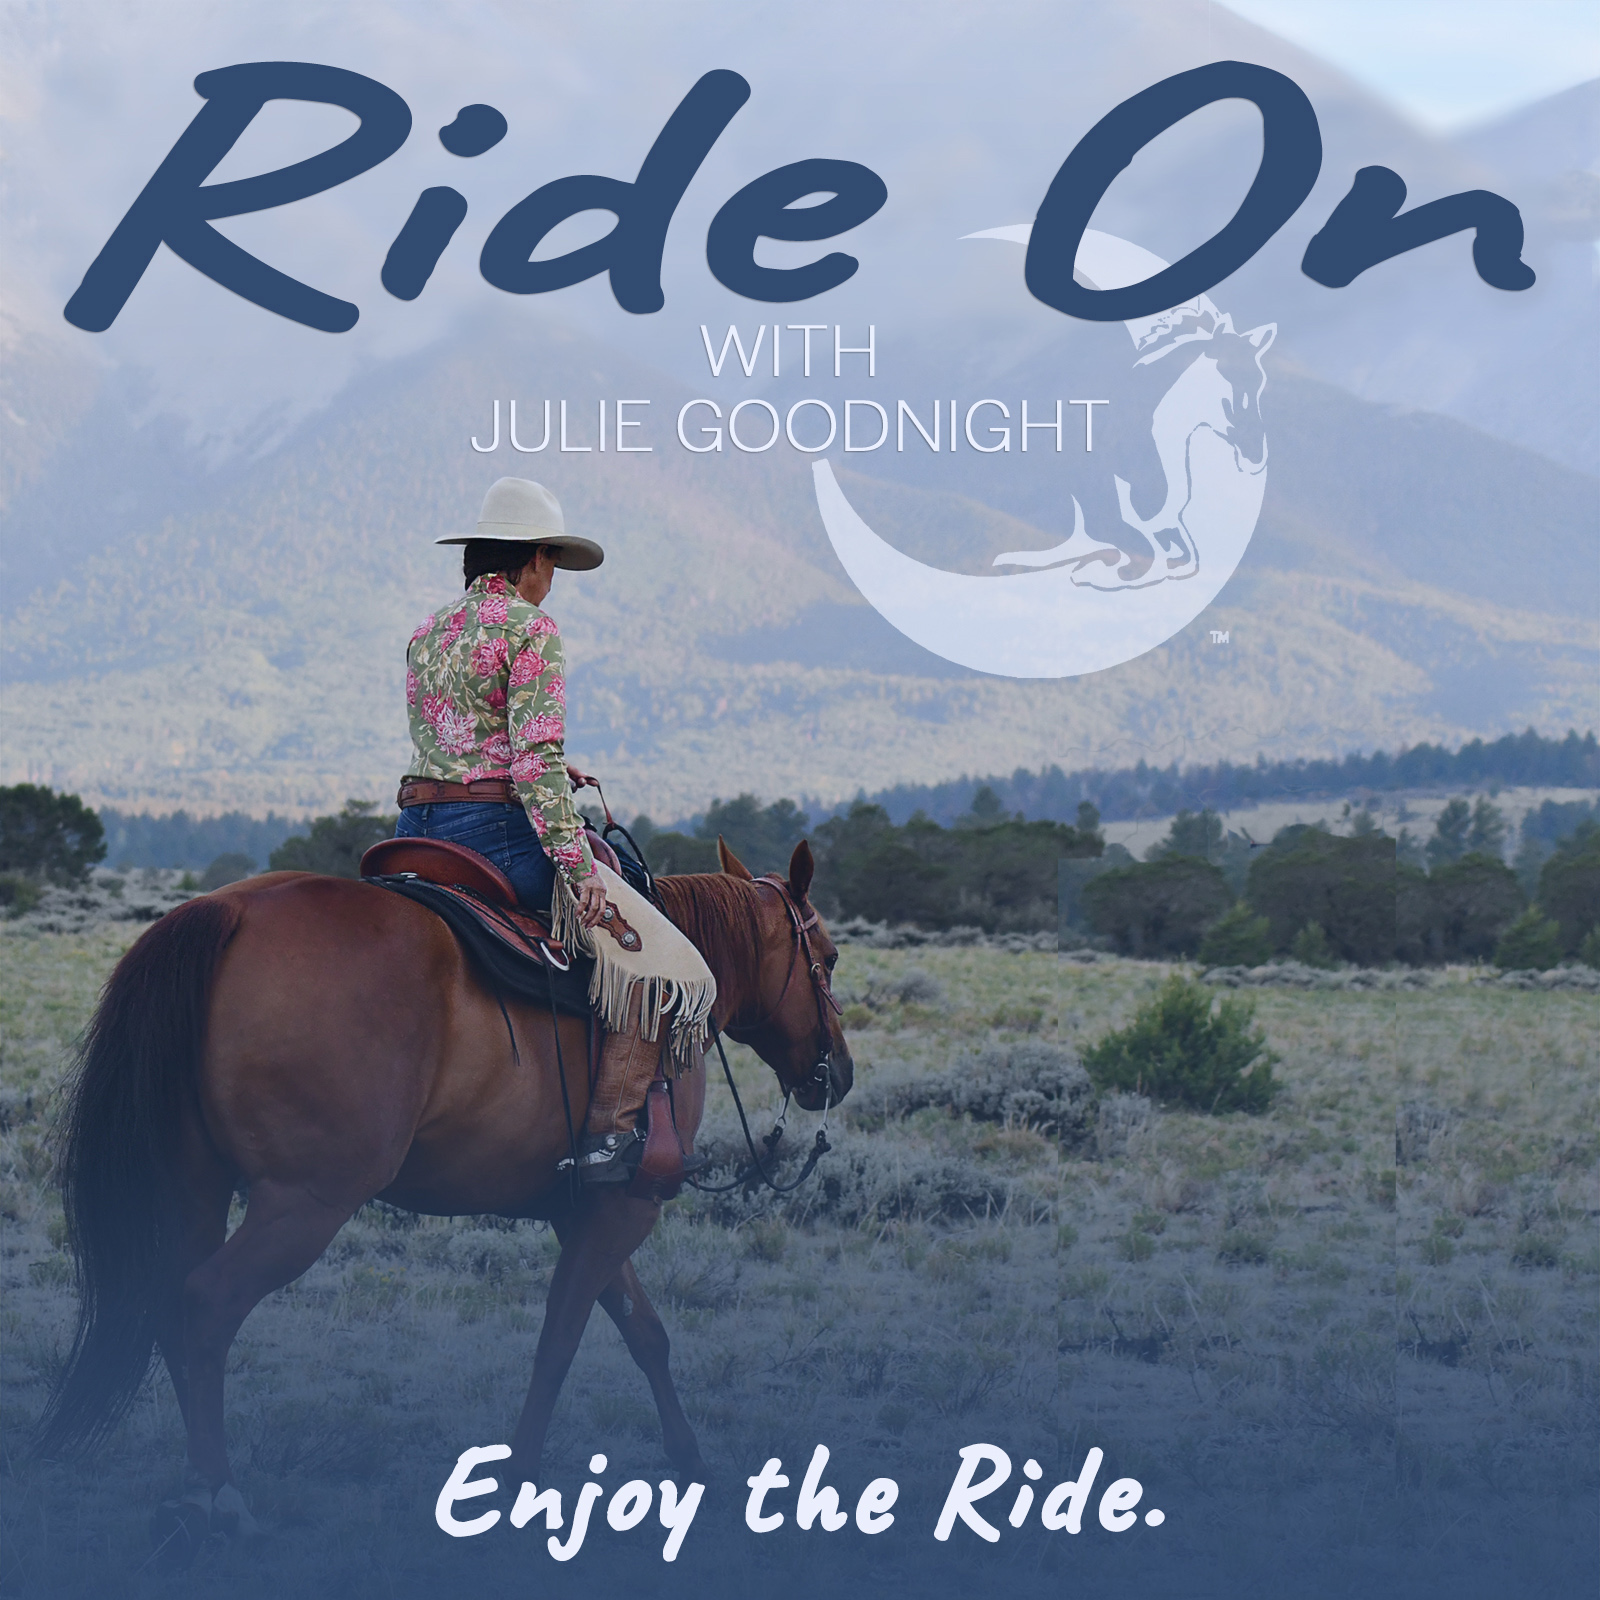 Ride On with Julie Goodnight